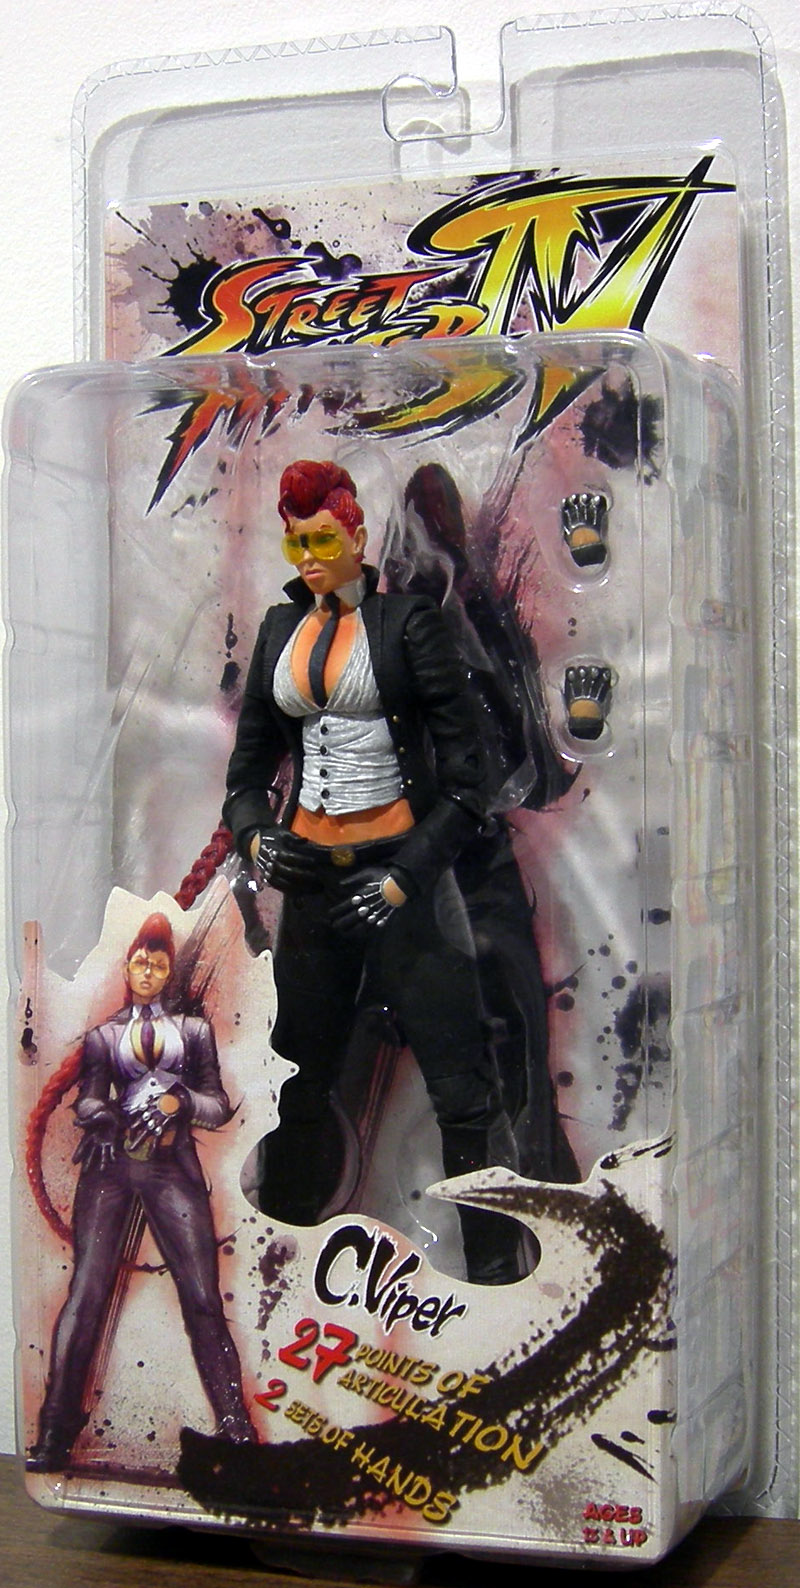 C. Viper (Street Fighter IV)